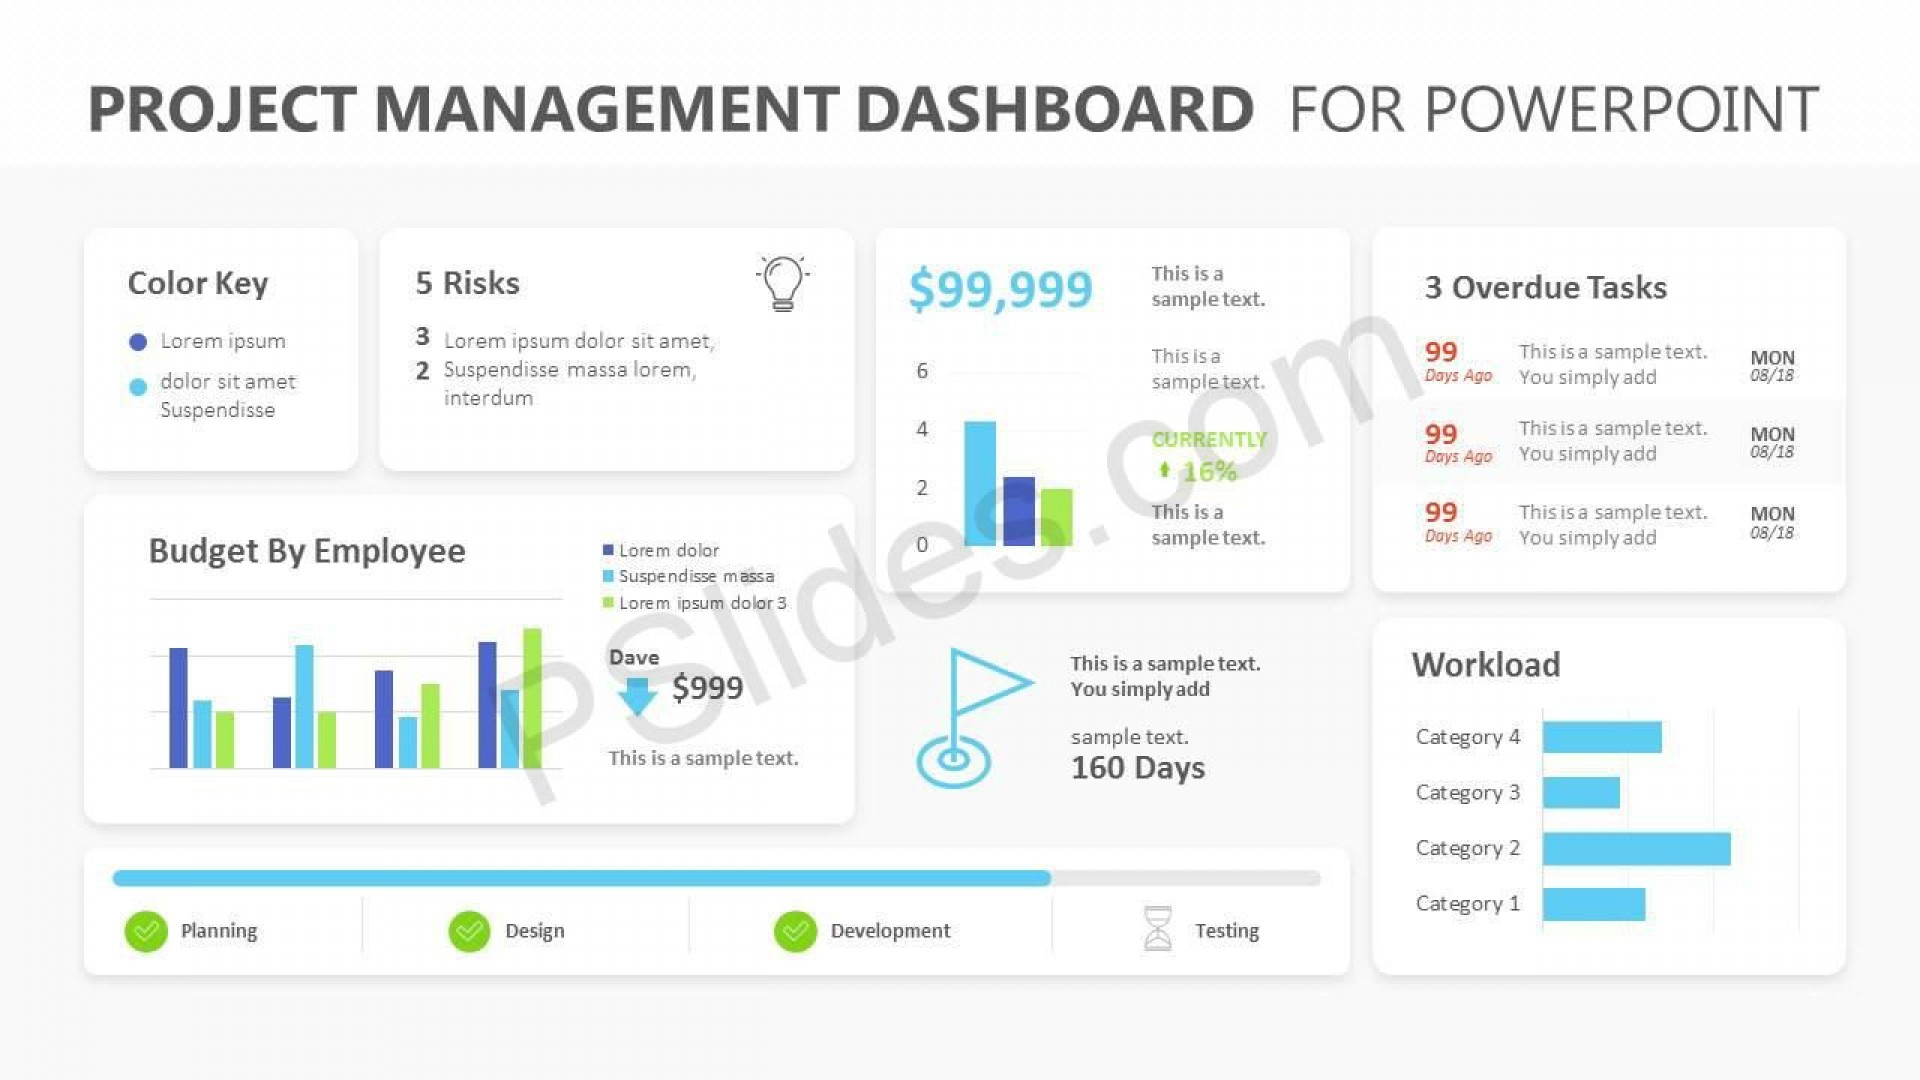 006 Wonderful Project Management Powerpoint Template Free Download Picture  Sqert Dashboard1920